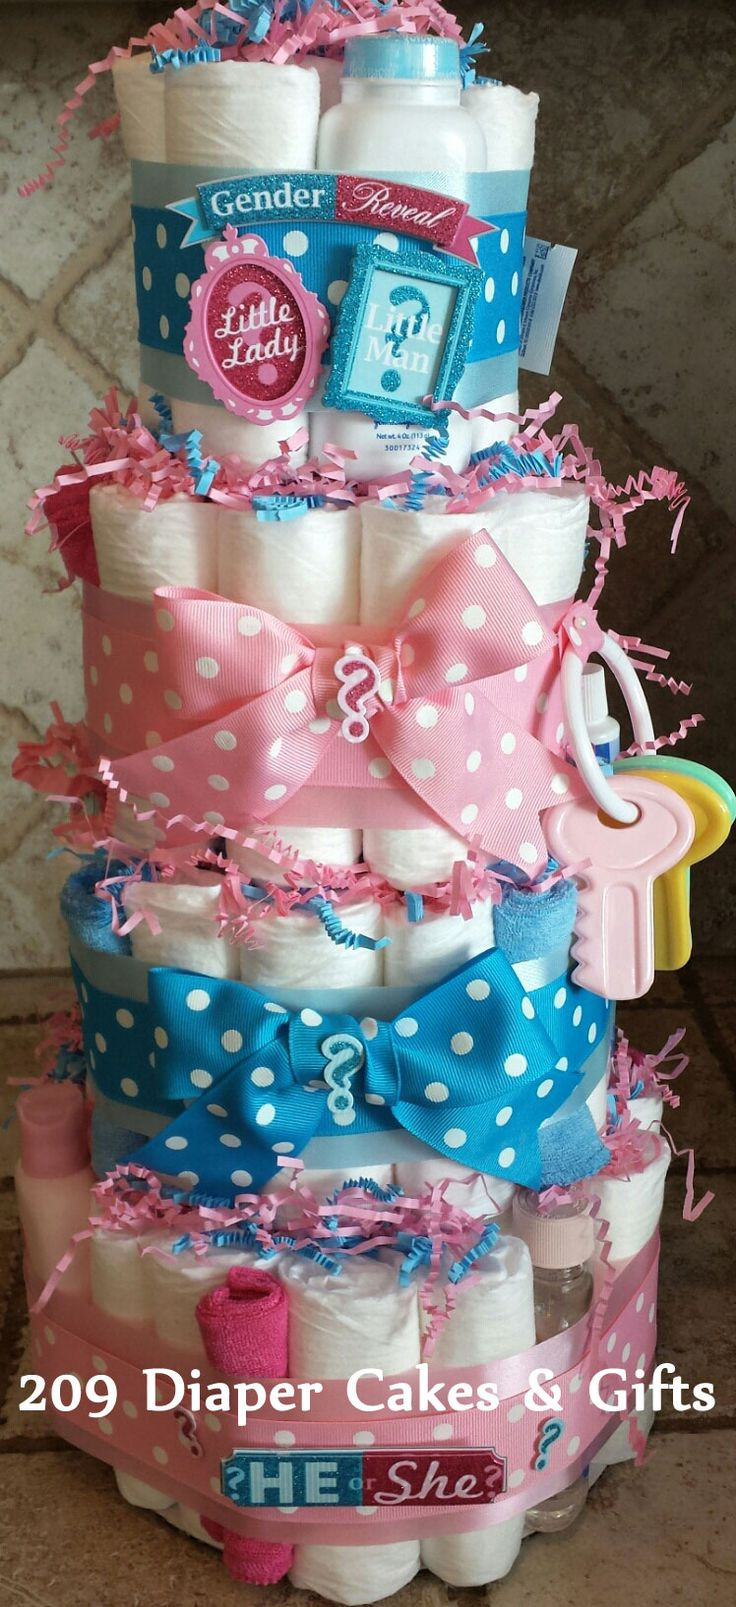 Gift Ideas For Baby Reveal Party  Best 25 Gender reveal ts ideas on Pinterest